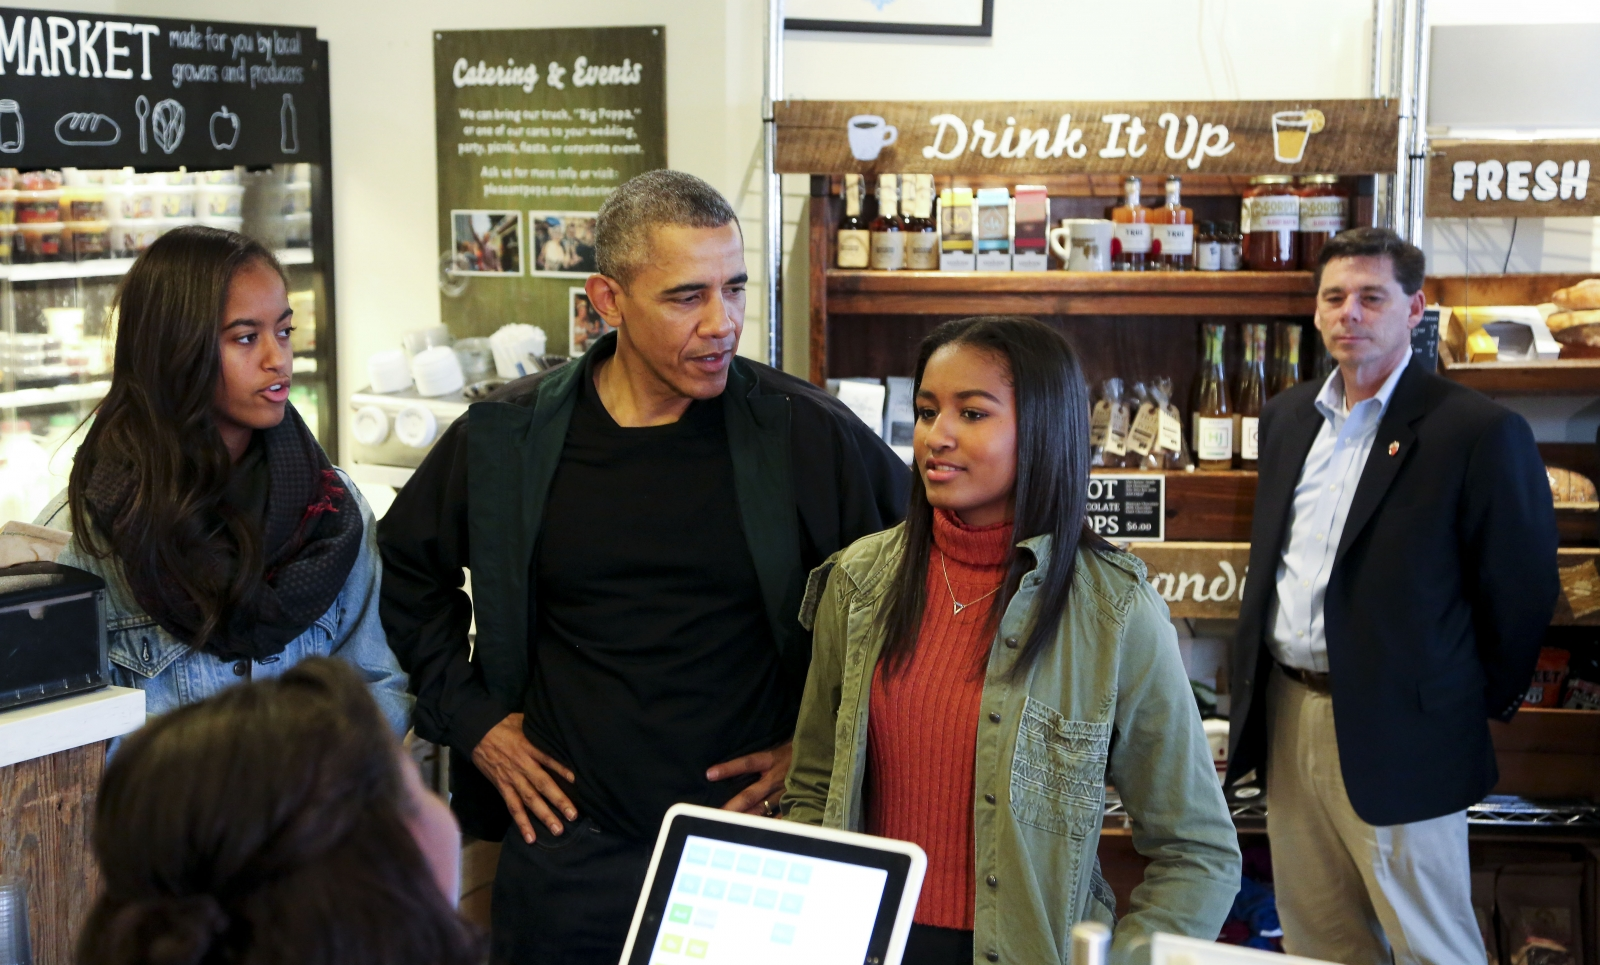 President Barack Obama daughters, Malia and Sasha